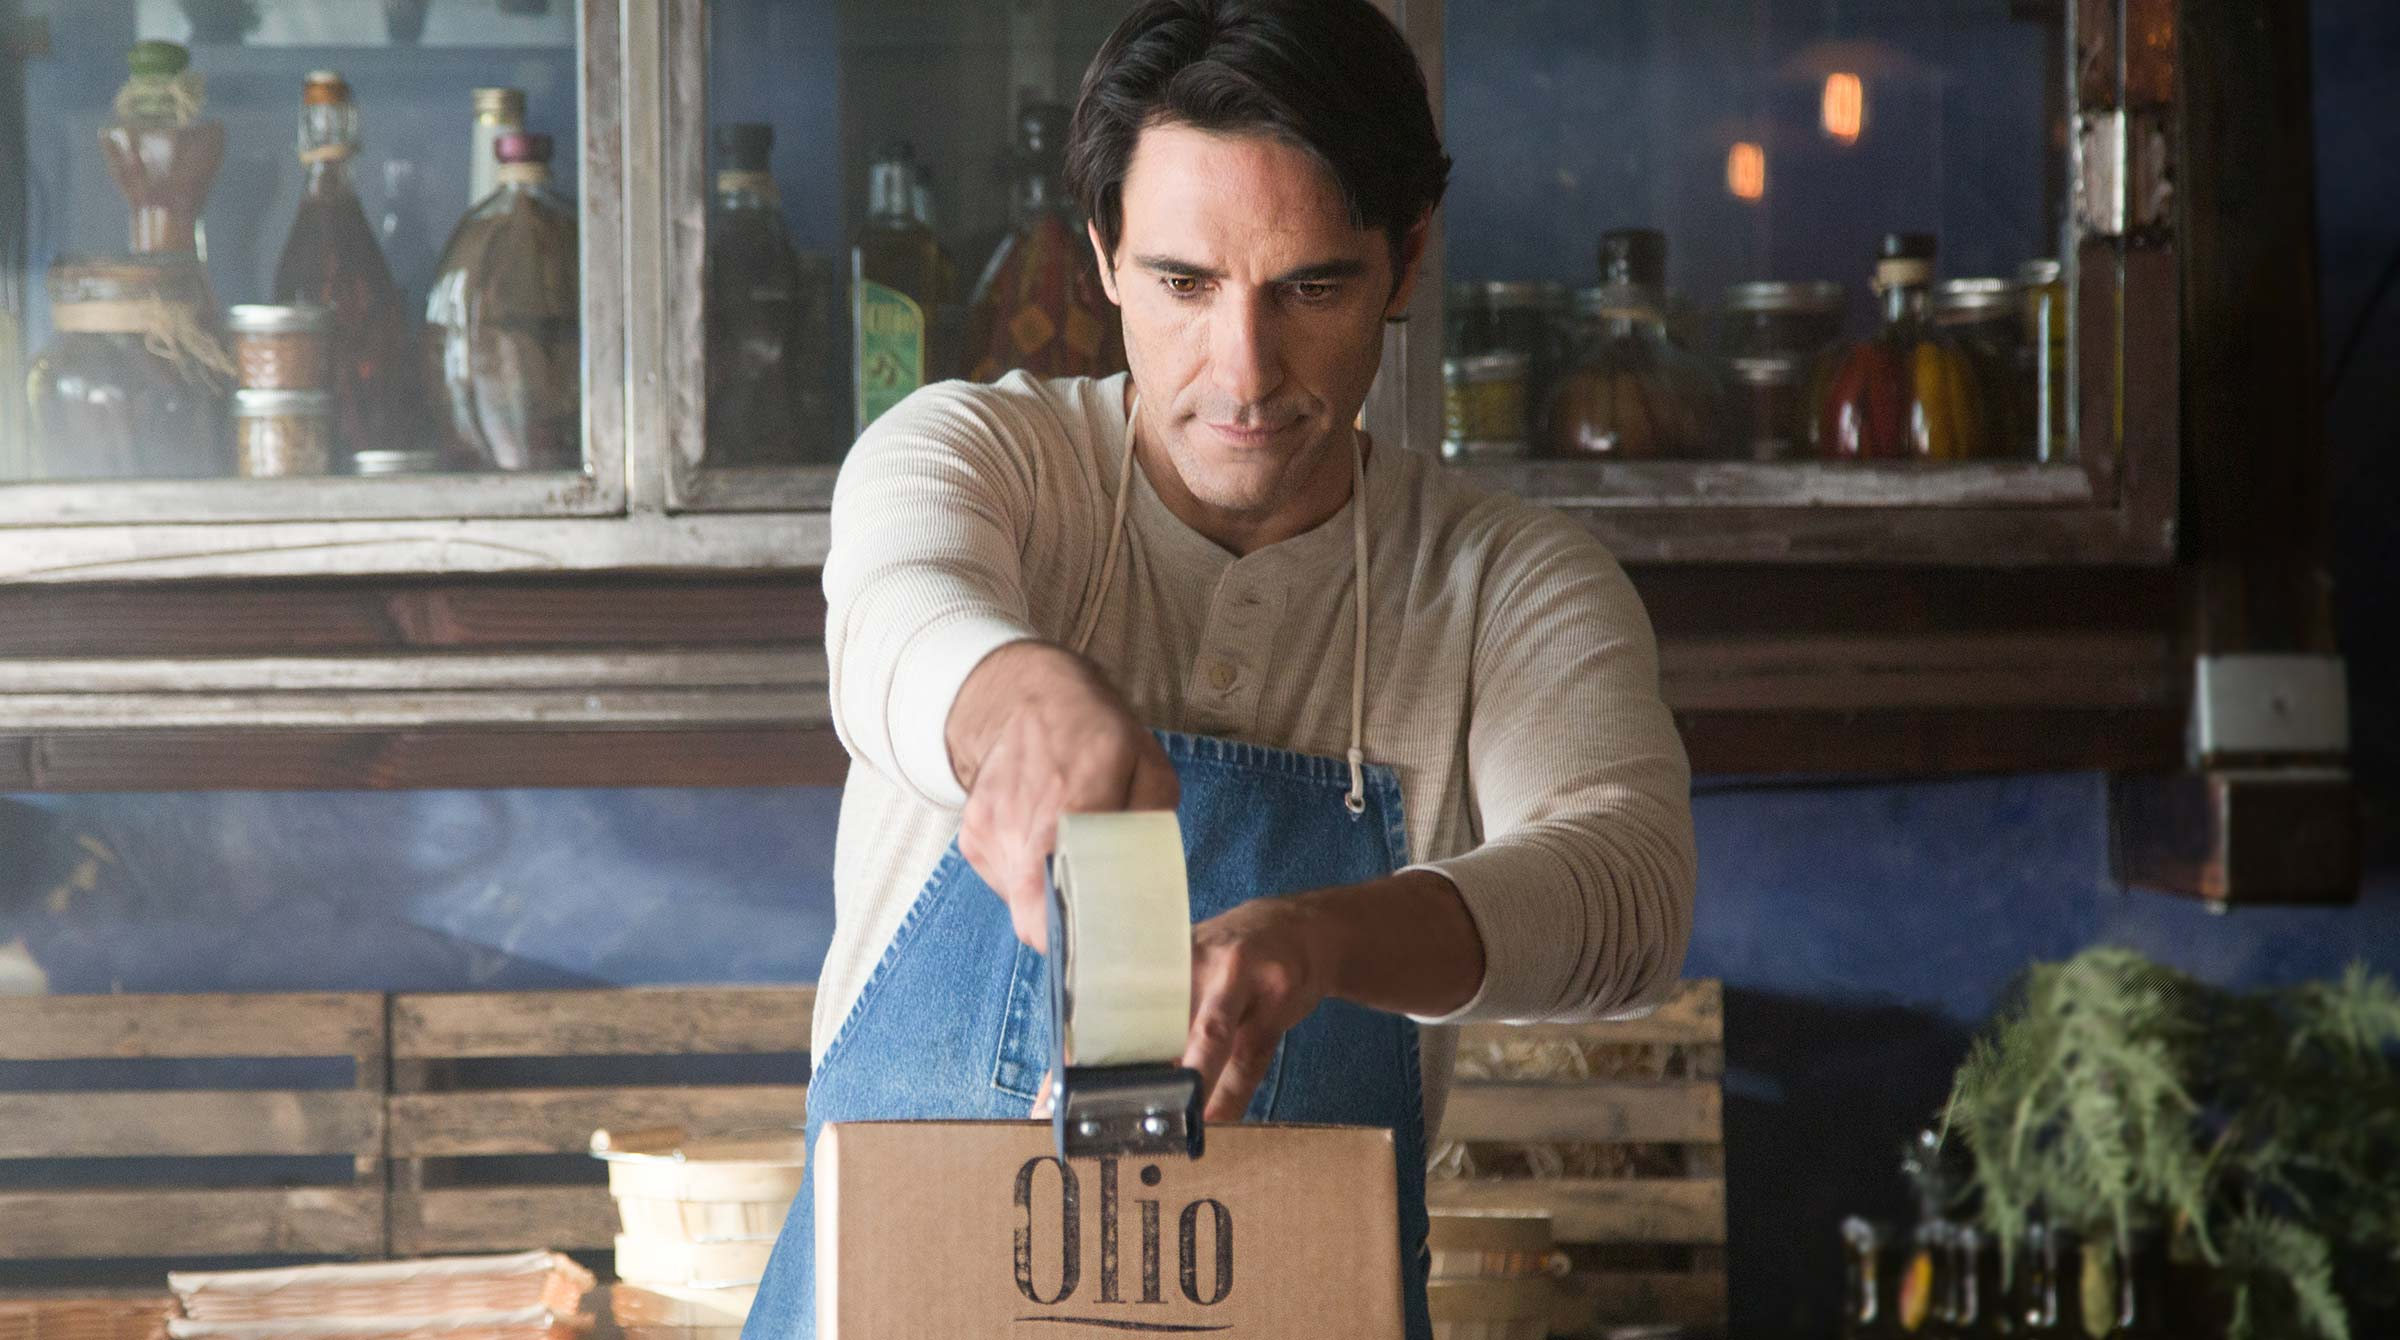 UPS brand imagery - olive oil maker packing a shipping box